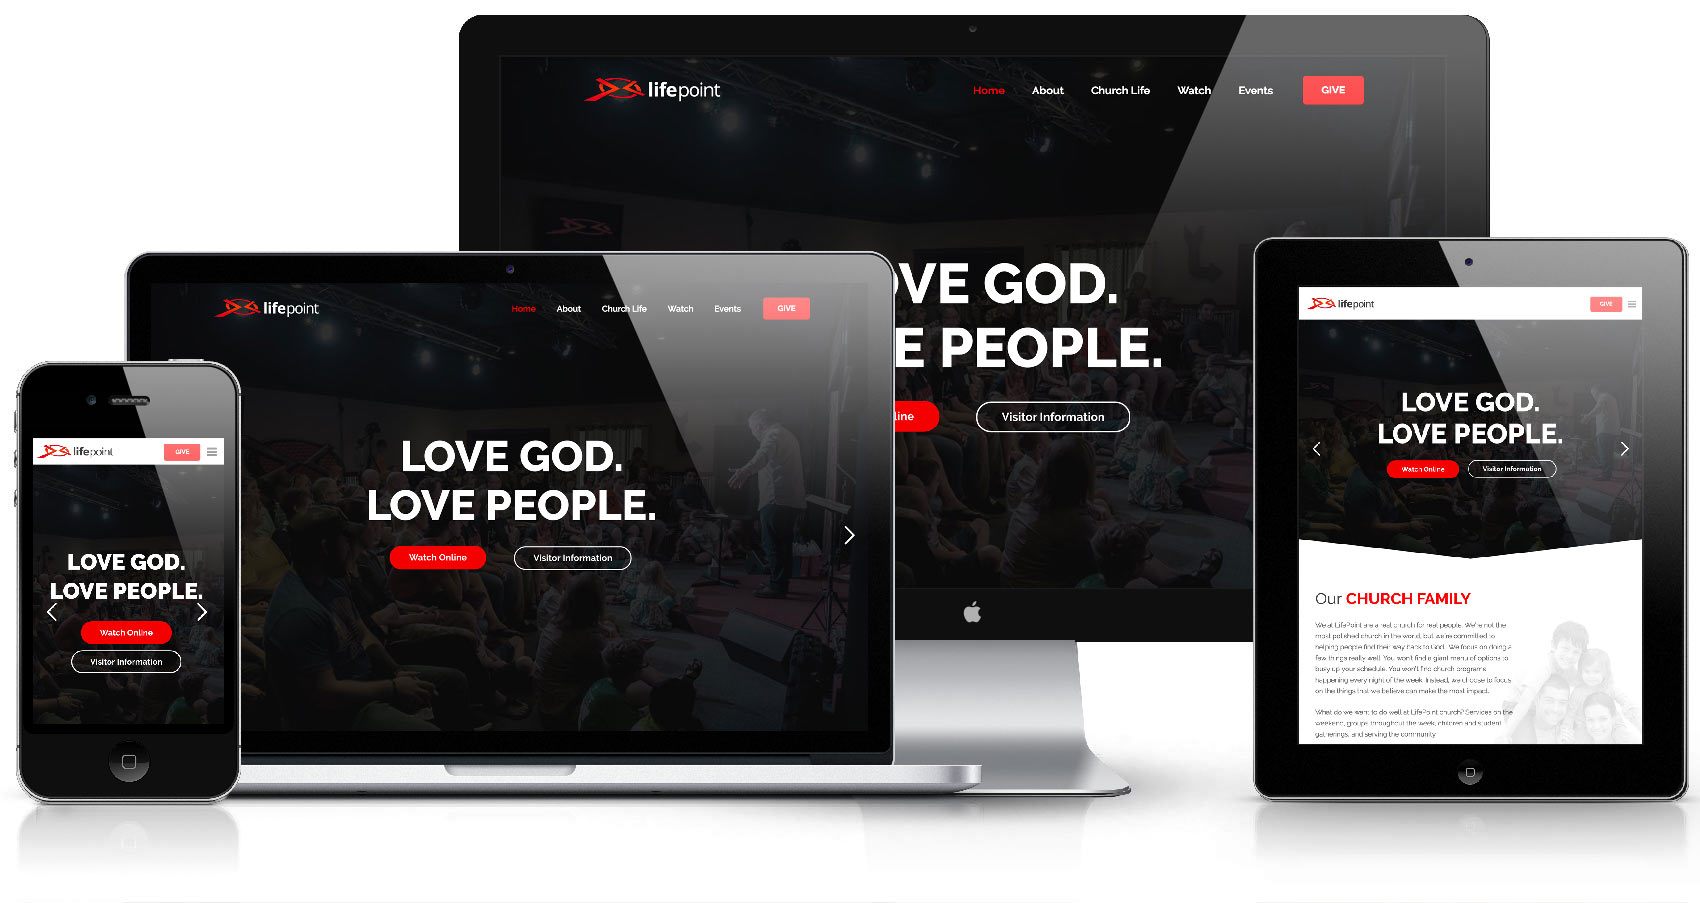 lifepoint 365 website desktop mobile responsive retina